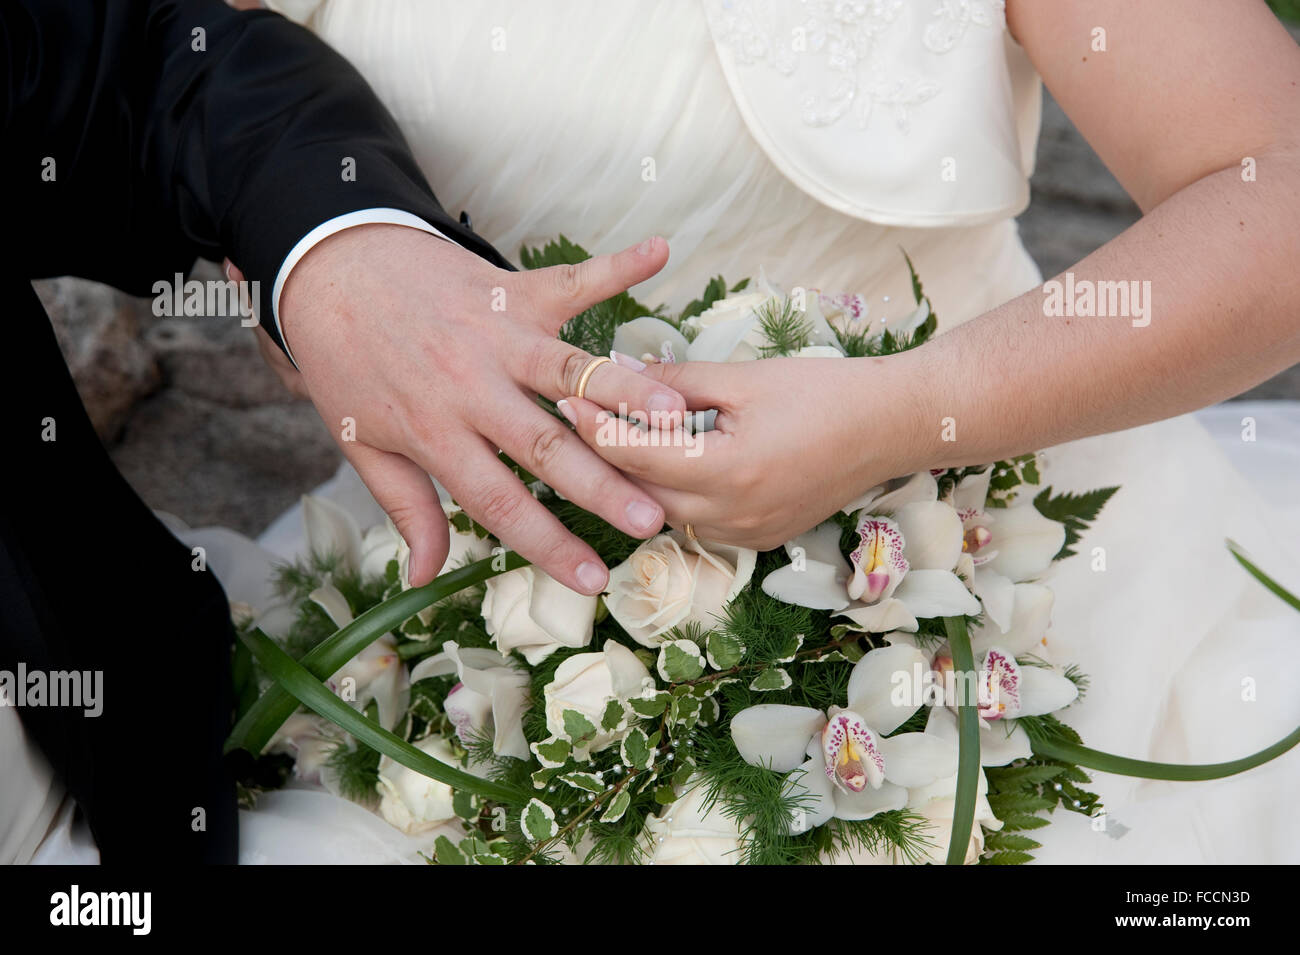 Woman Putting Wedding Ring On Man's Finger, Mid Section - Stock Image